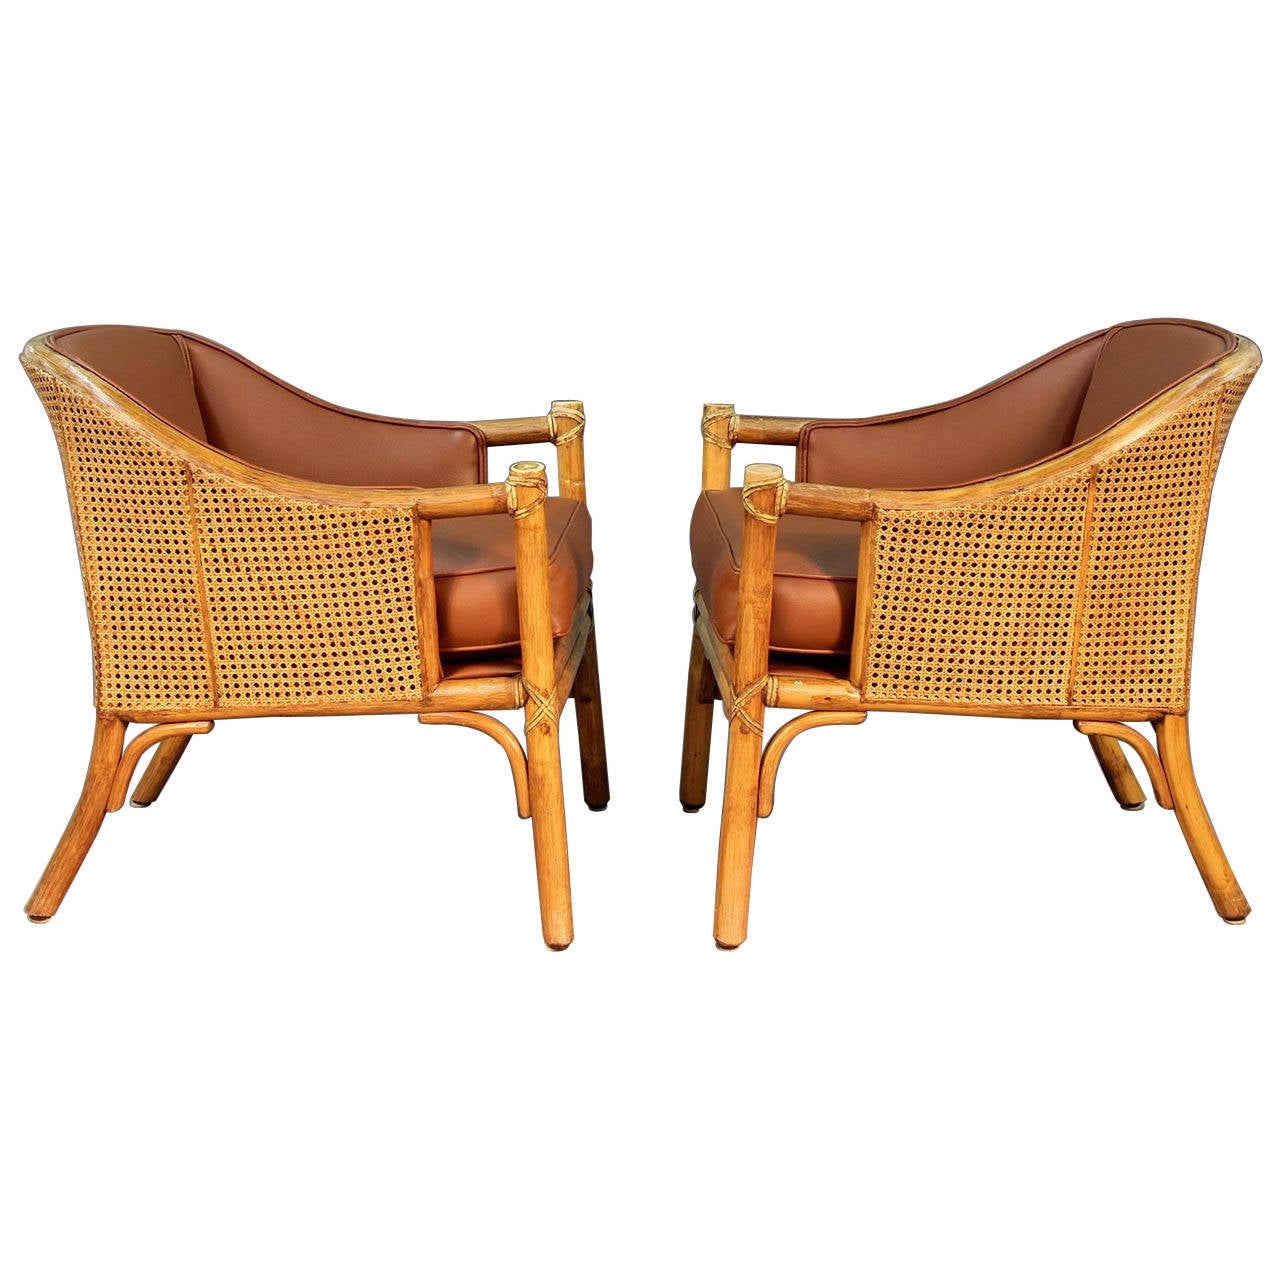 Attractive Pair Of McGuire Rattan And Cane Club Chairs 1